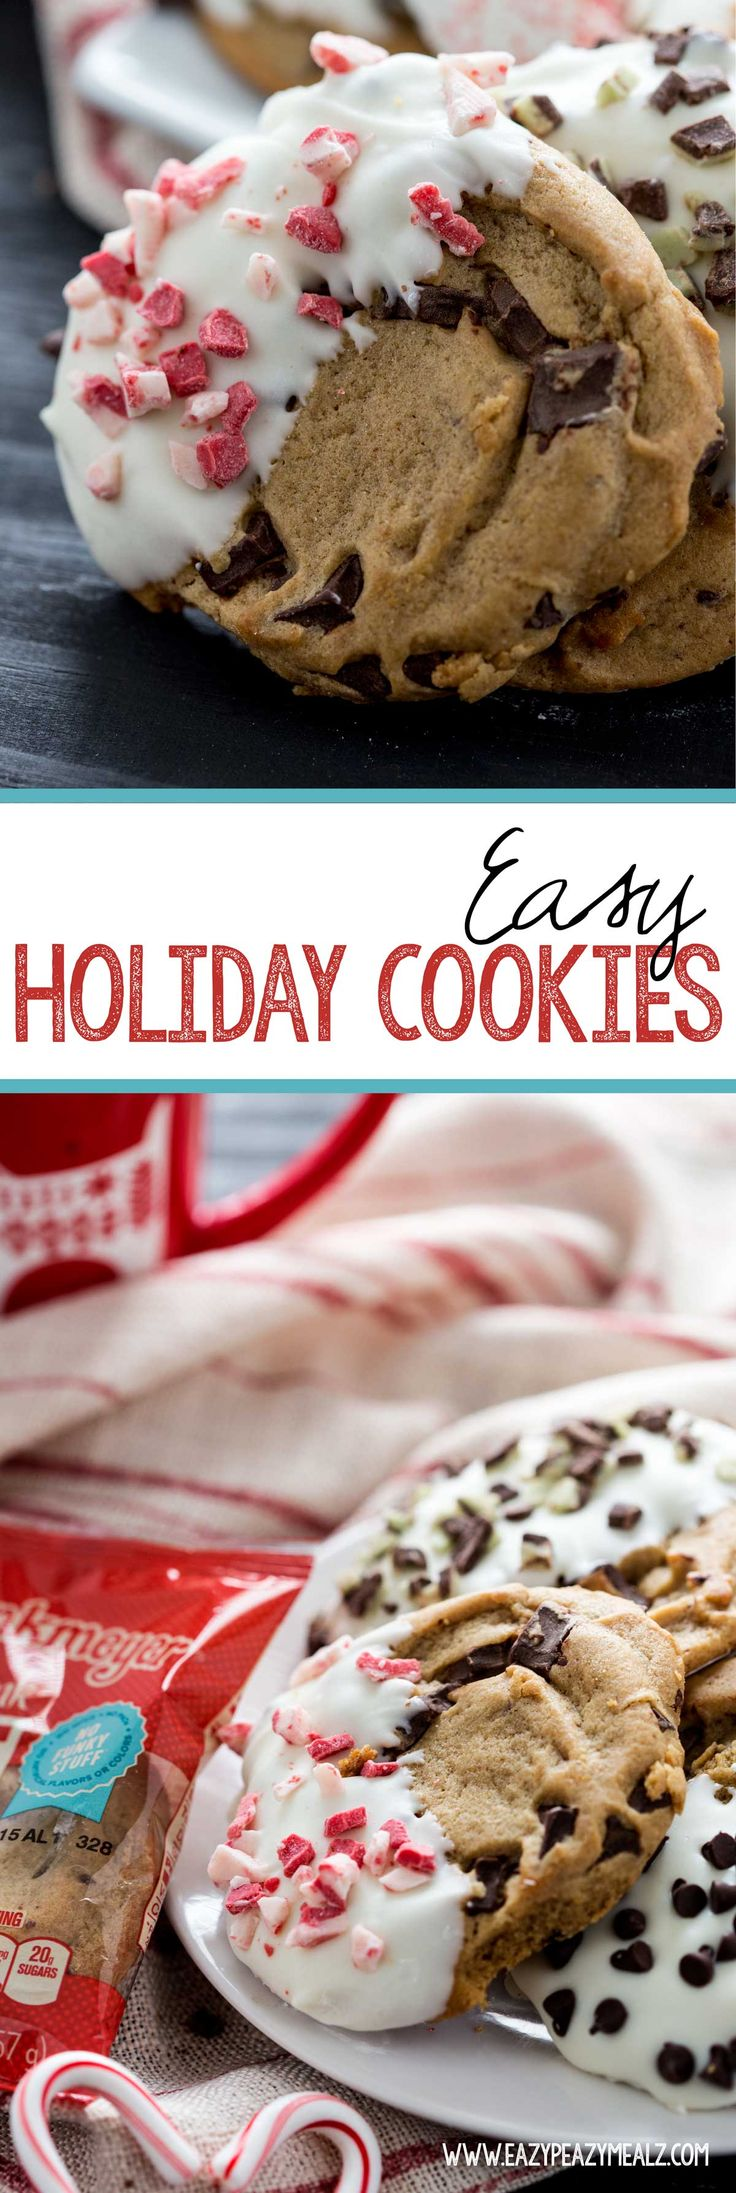 Easy Holiday Cookies are a fun way to celebrate #NationalCookieDay, and to take great looking (and tasting) cookies to parties without too much work. #ad - Eazy Peazy Mealz